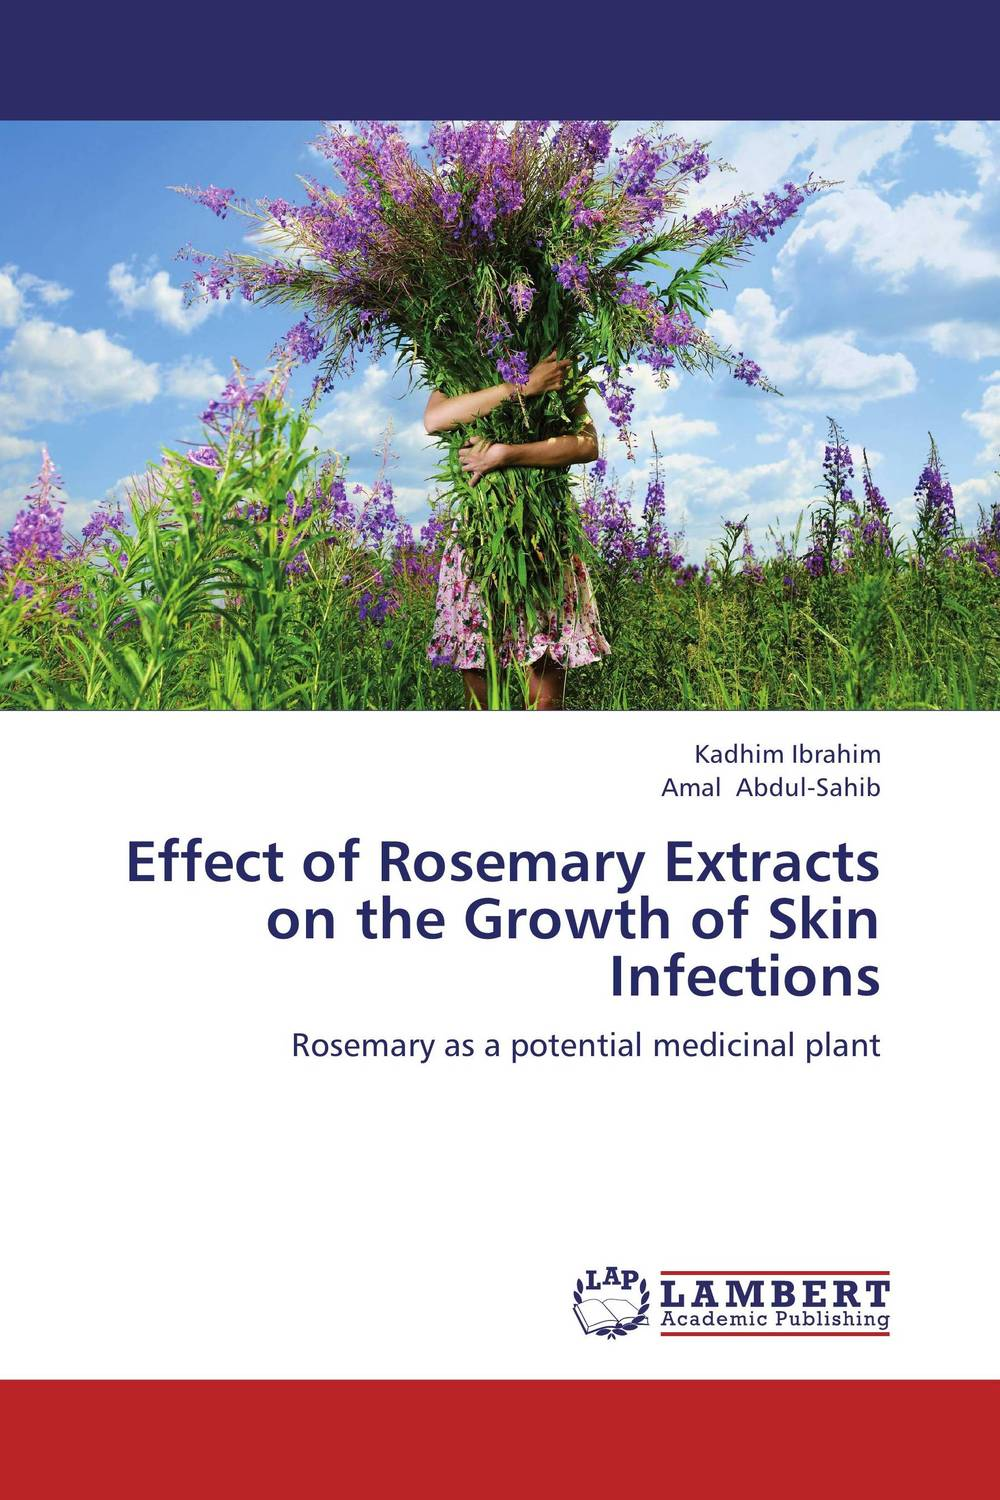 Effect of Rosemary Extracts on the Growth of Skin Infections sog zoom black tini